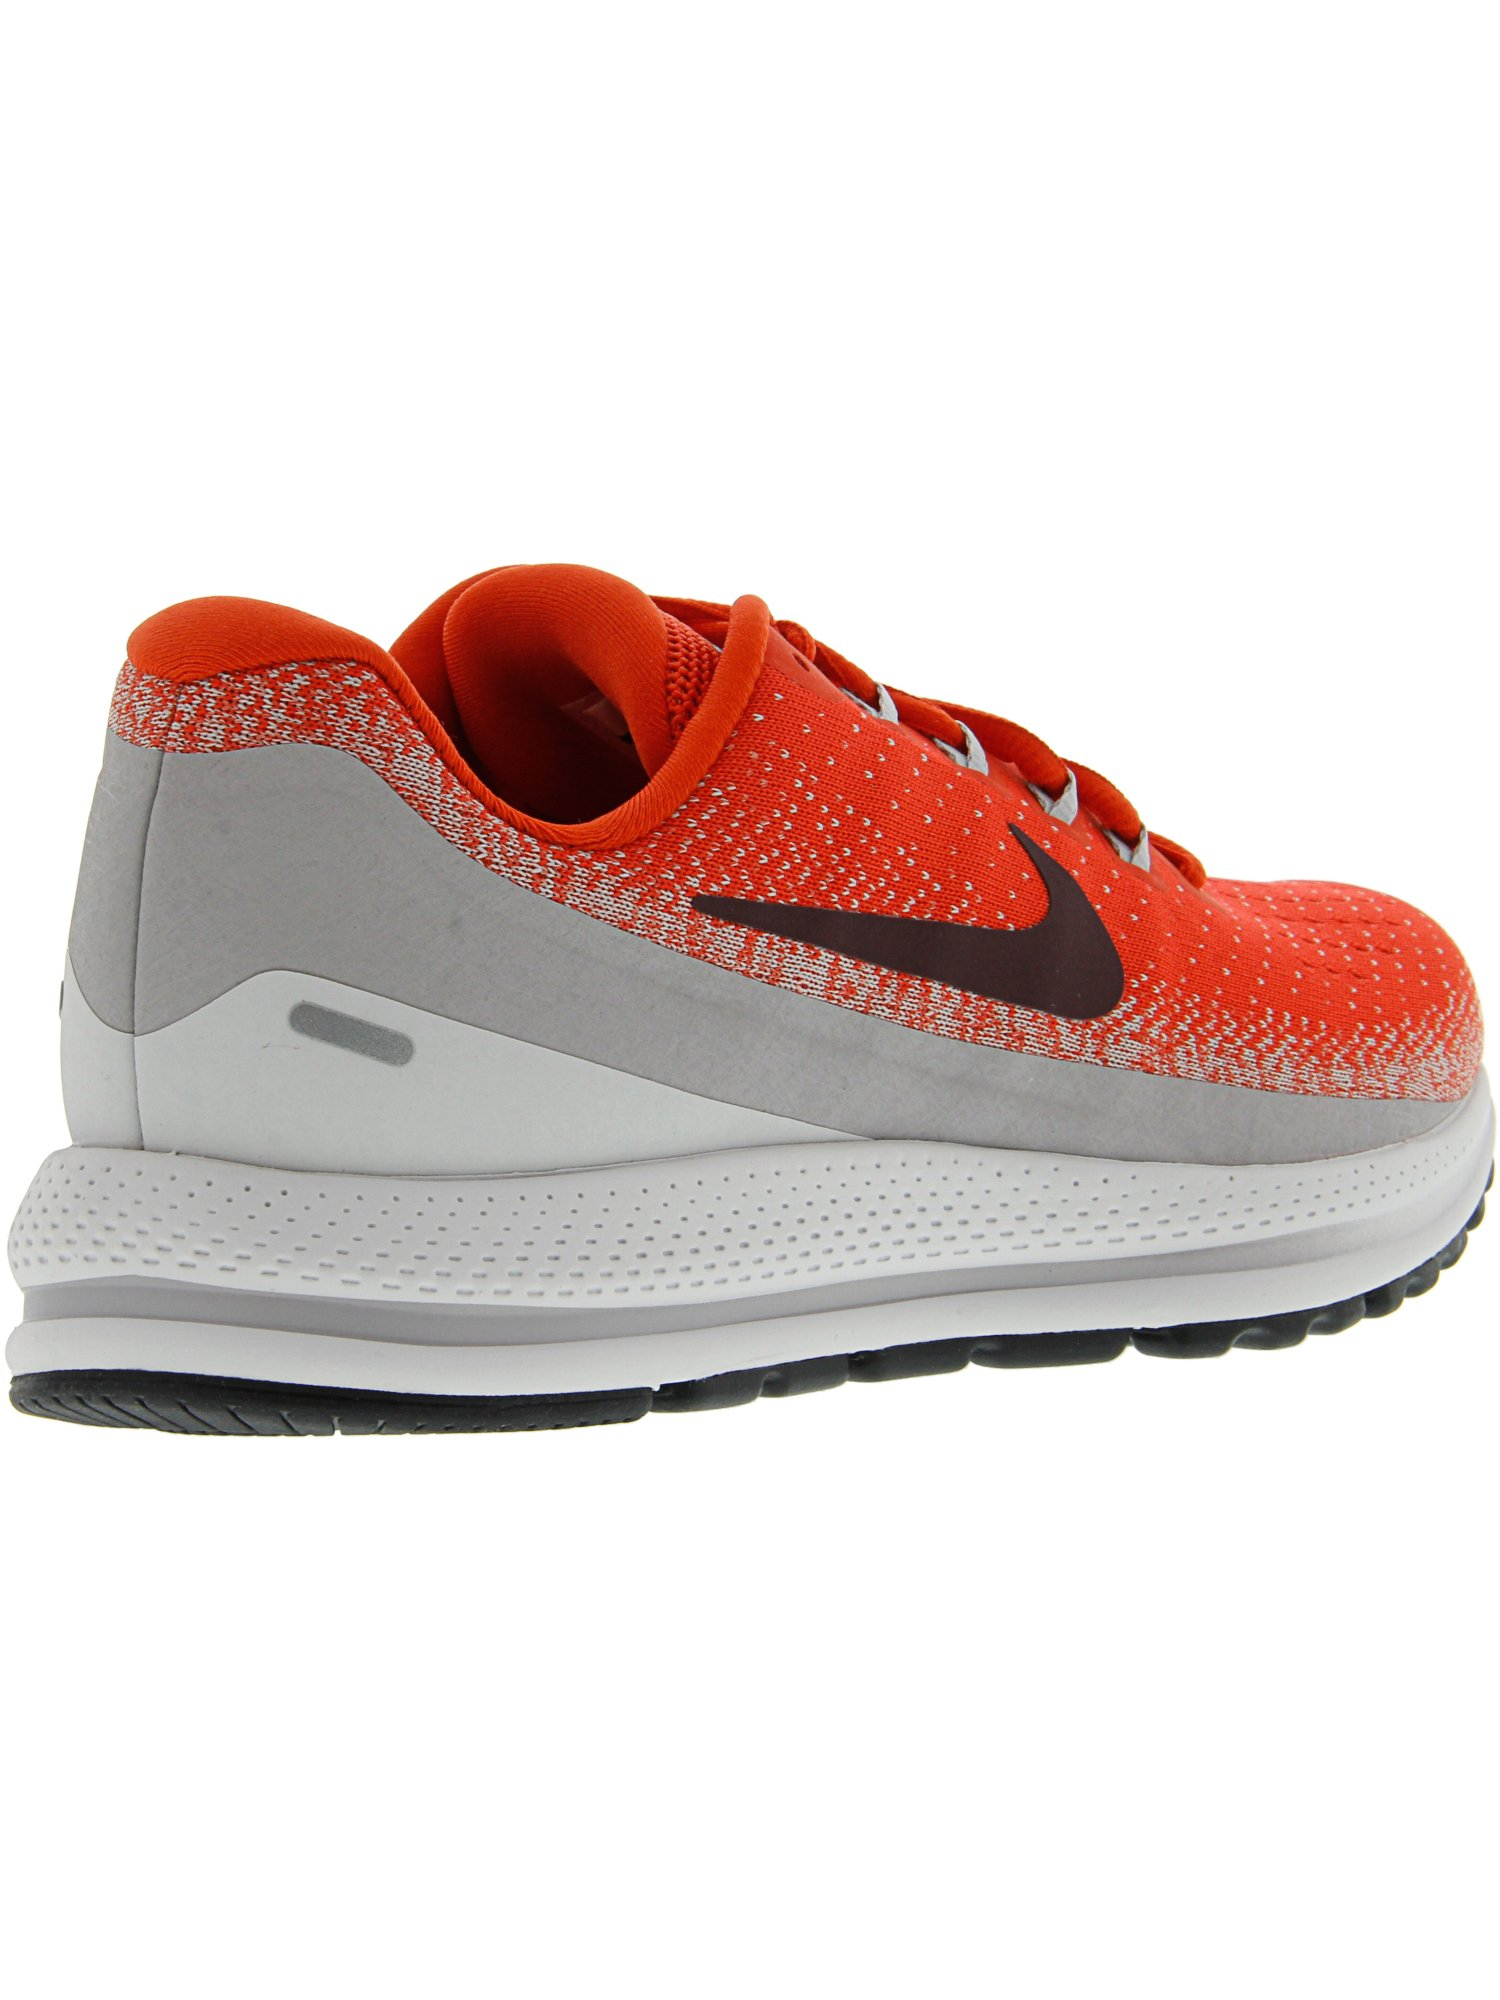 295eafce682 Nike Men s Air Zoom Vomero 13 Ankle-High Fabric Running Shoe